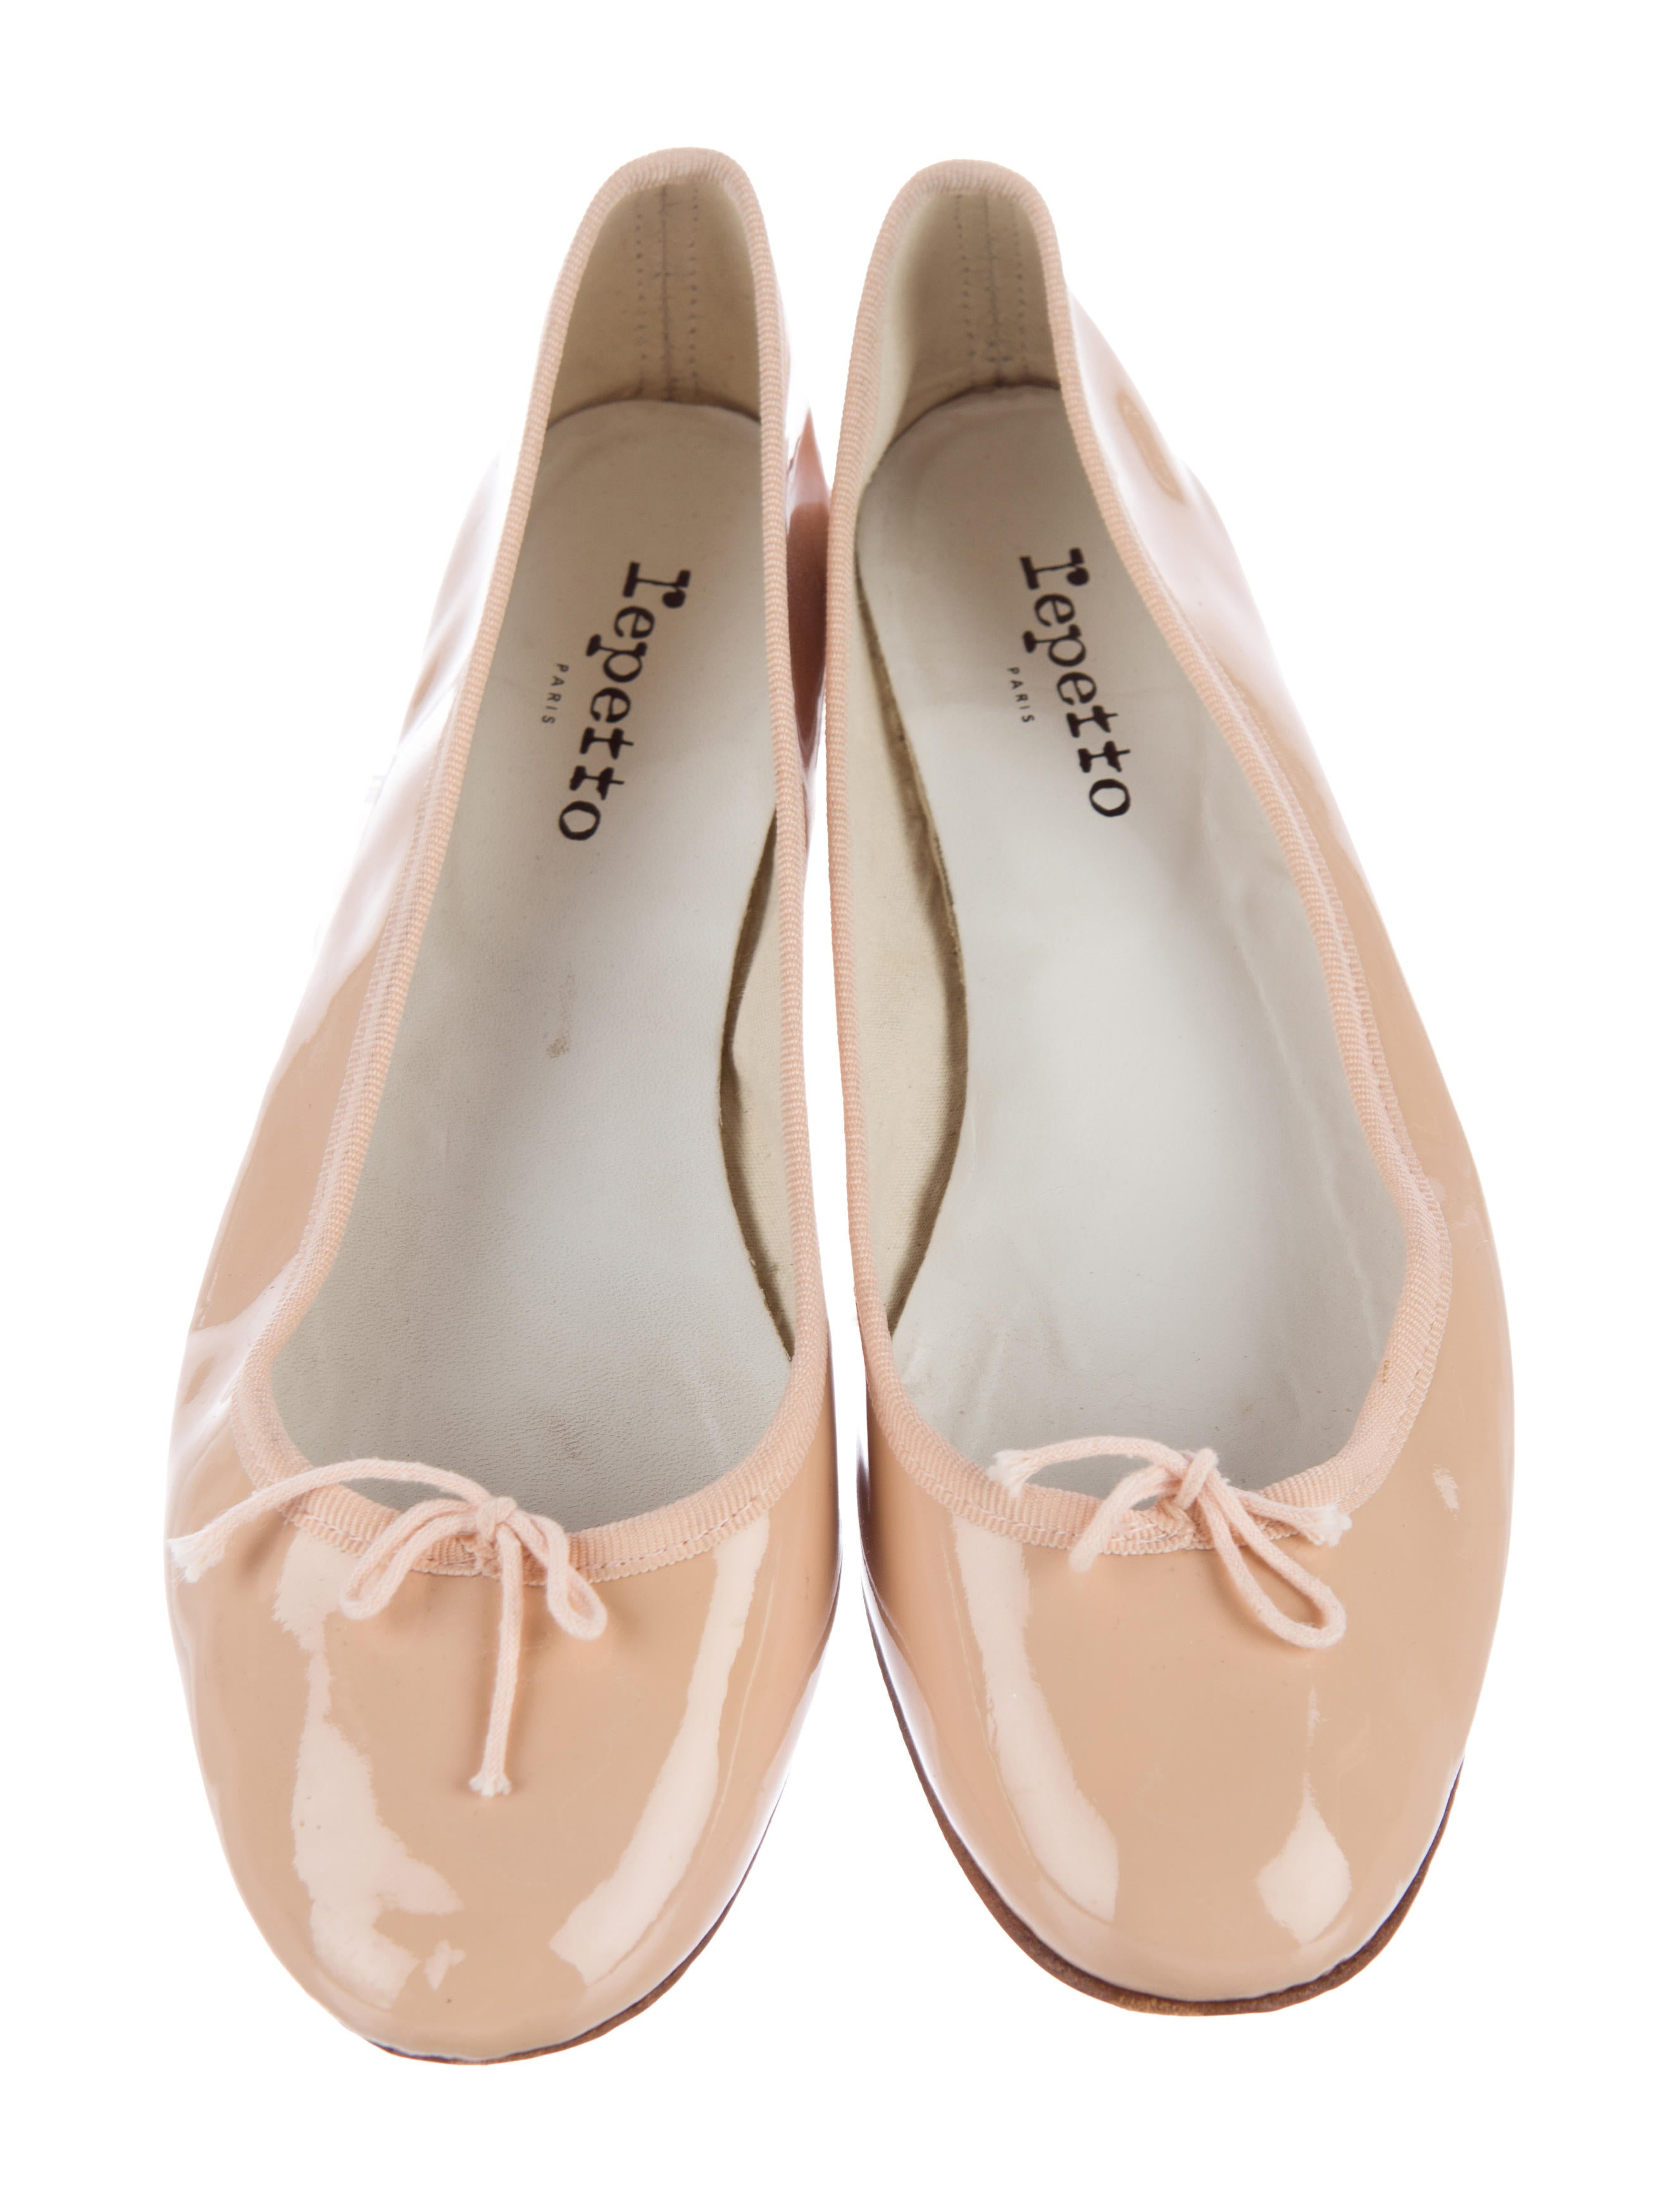 repetto patent leather ballet flats shoes rep21114